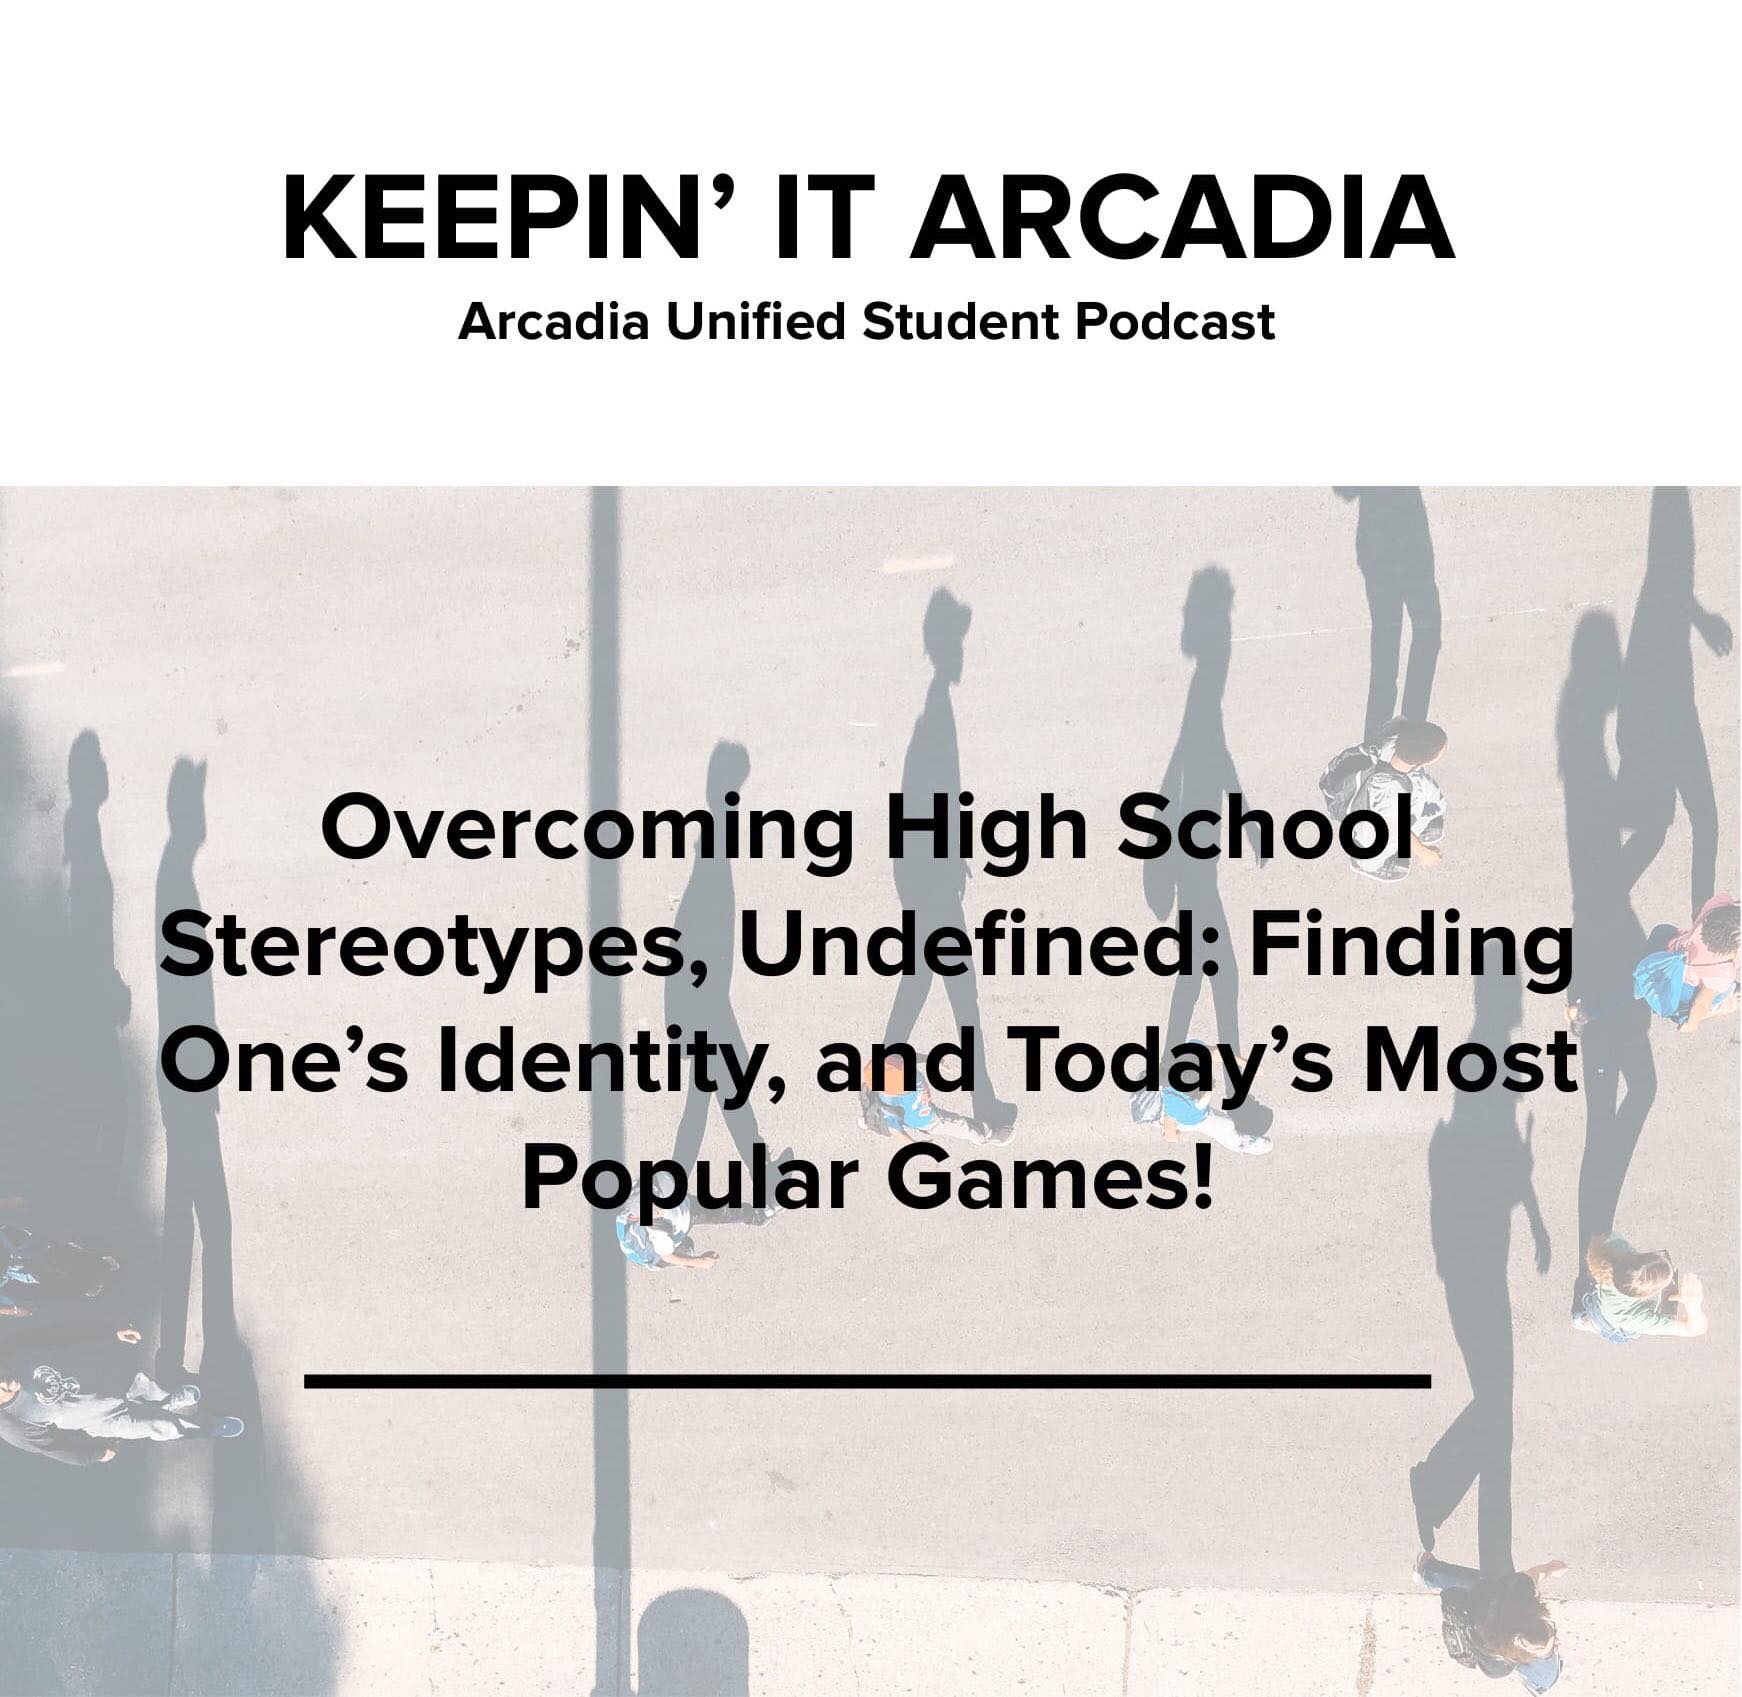 S2 #20 Overcoming High School Stereotypes, Undefined: Finding One's Identity, and Today's Most Popular Games!